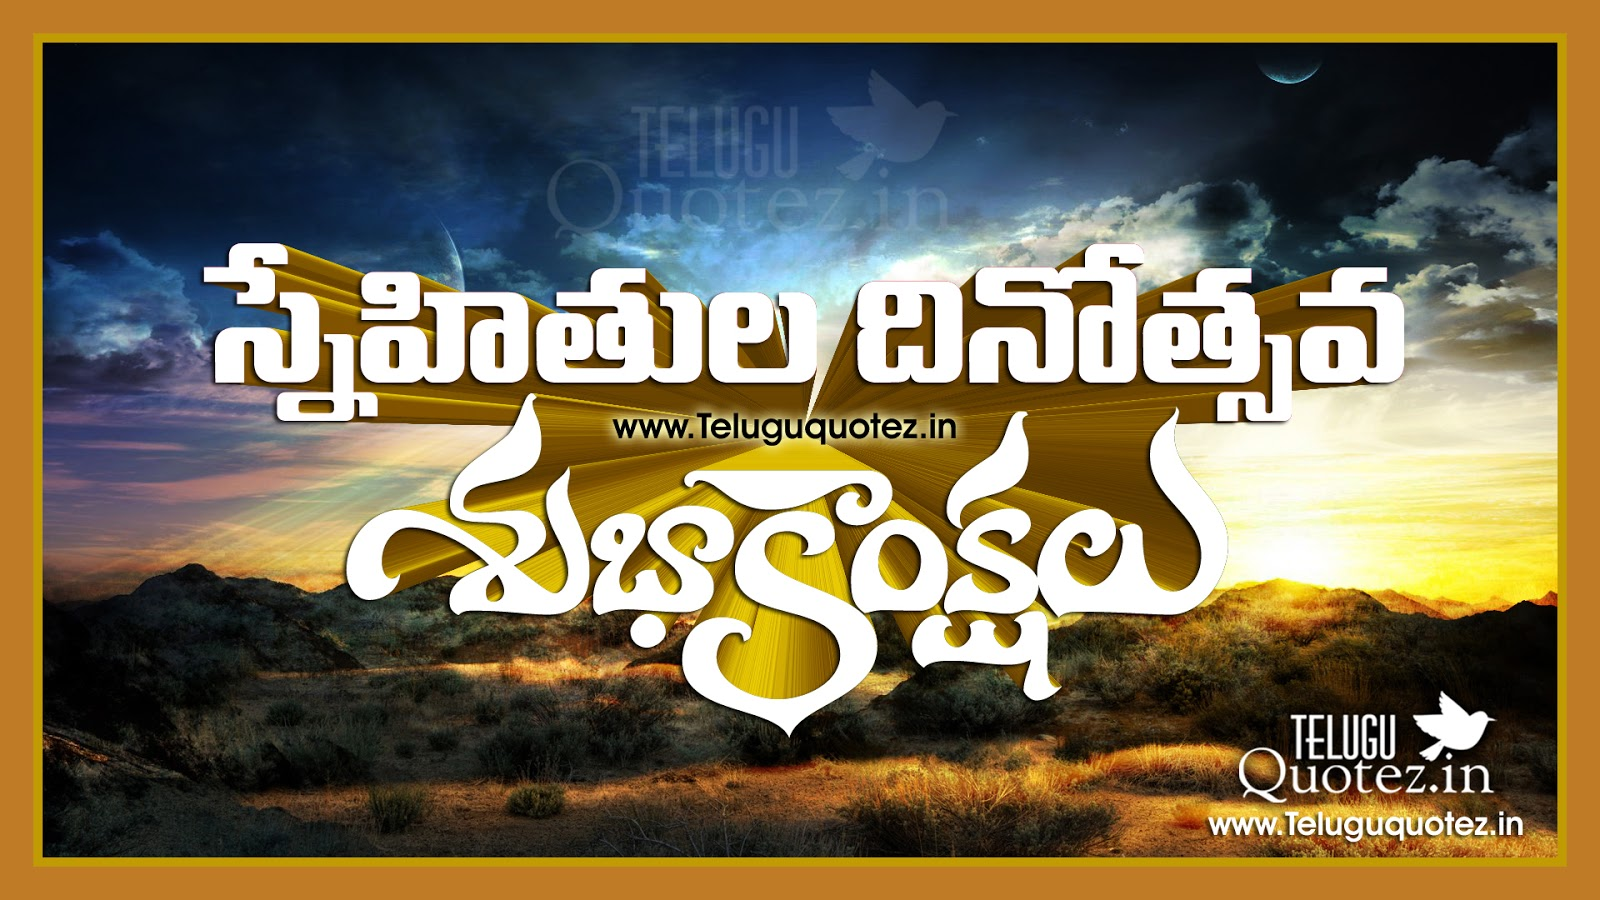 Happy friendship day telugu quotes and pictures teluguquotez